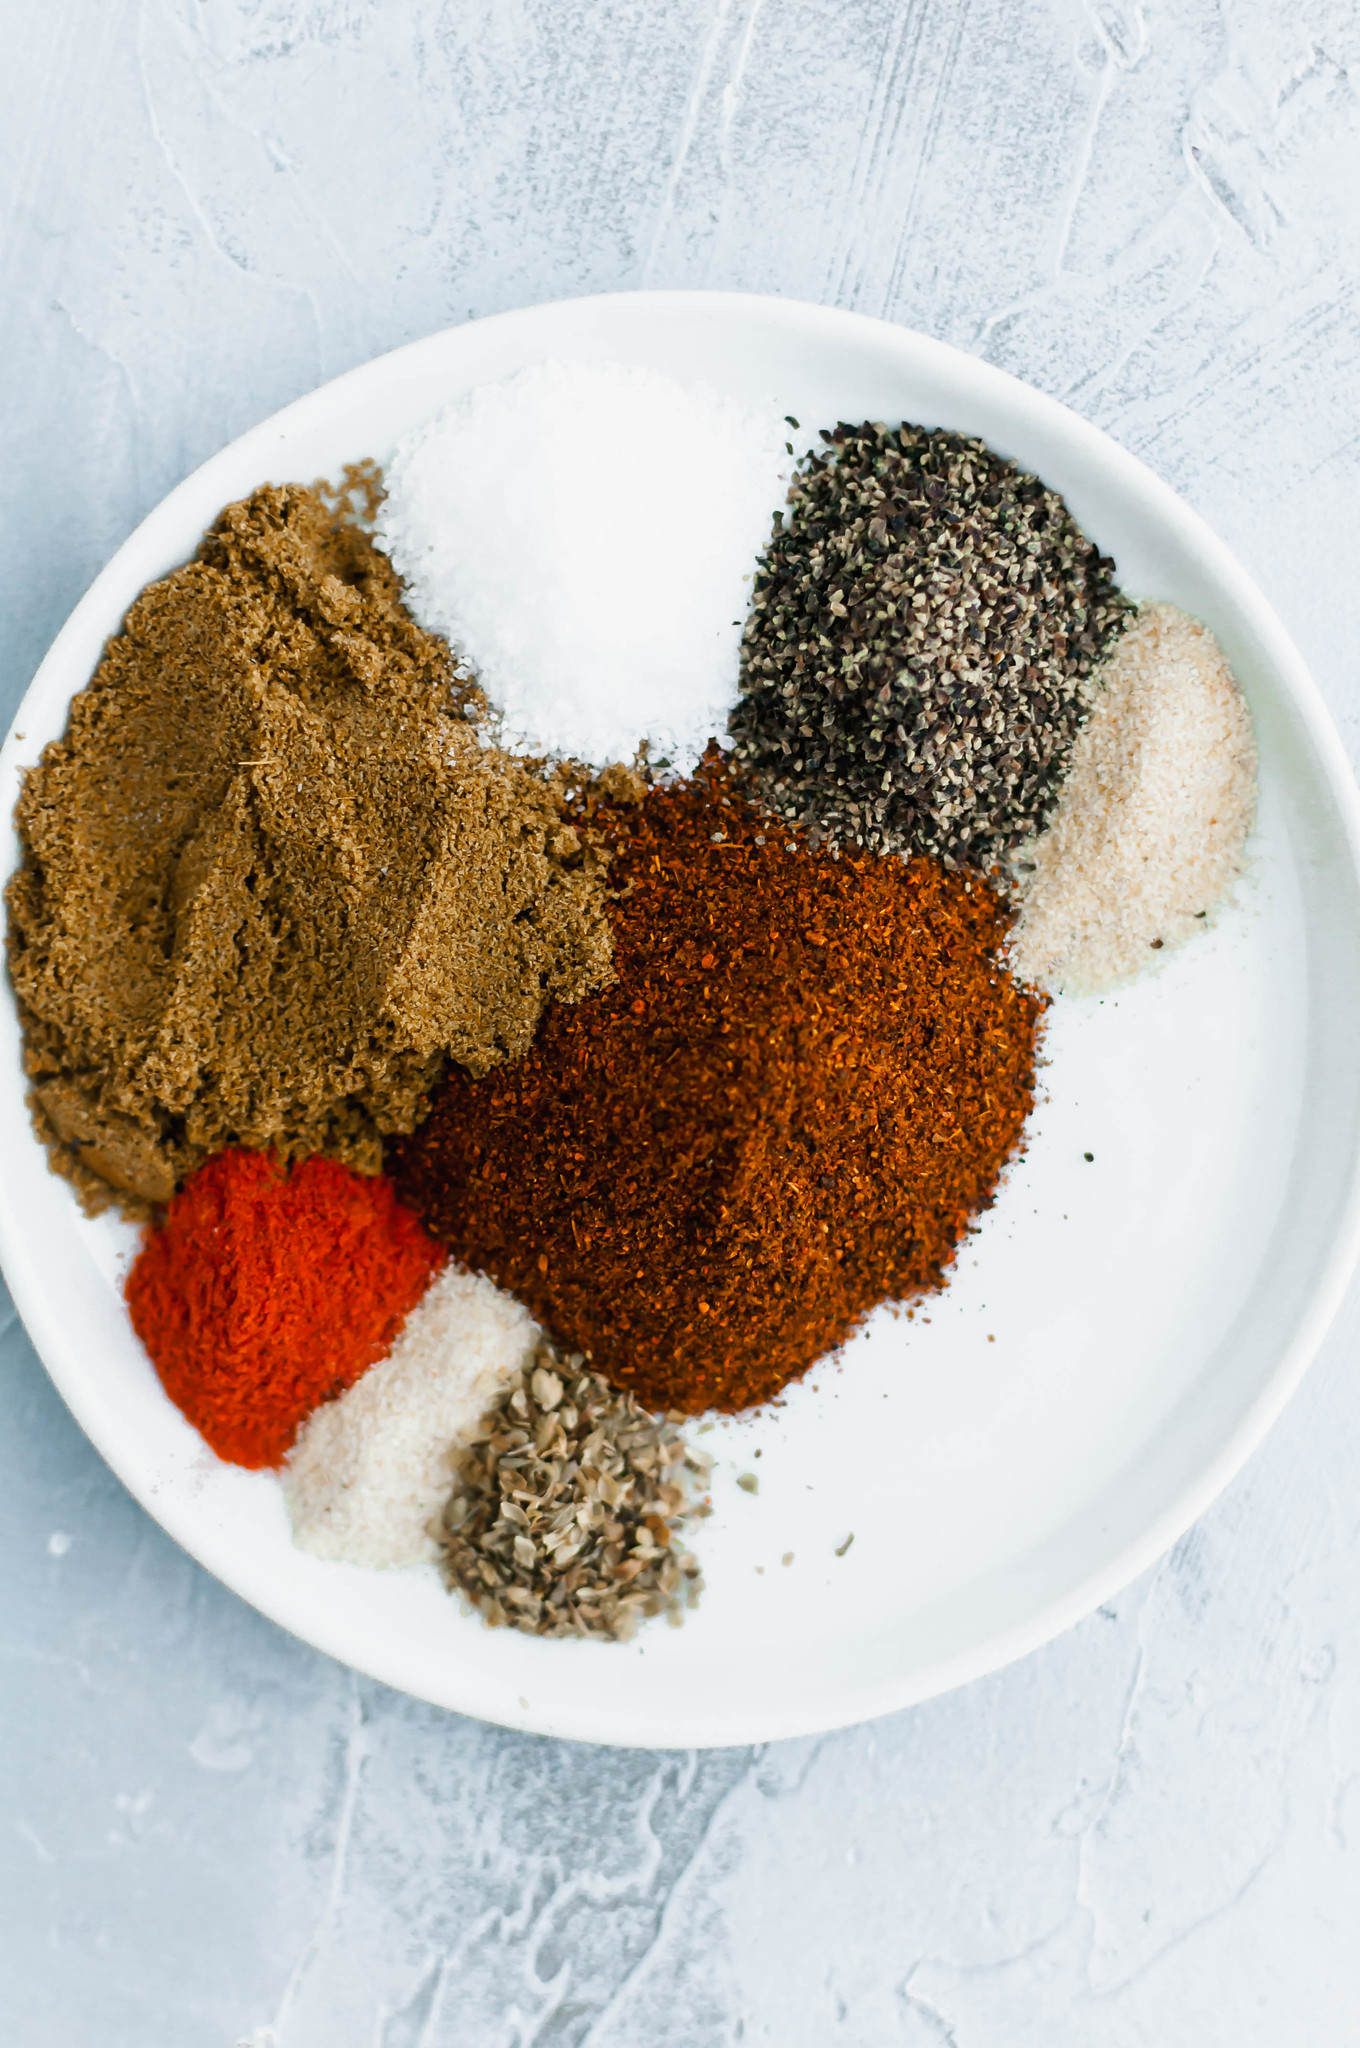 It is so easy to make your own Taco Seasoning Mix at home with simple, common spices. You can control the salt and spice level too.